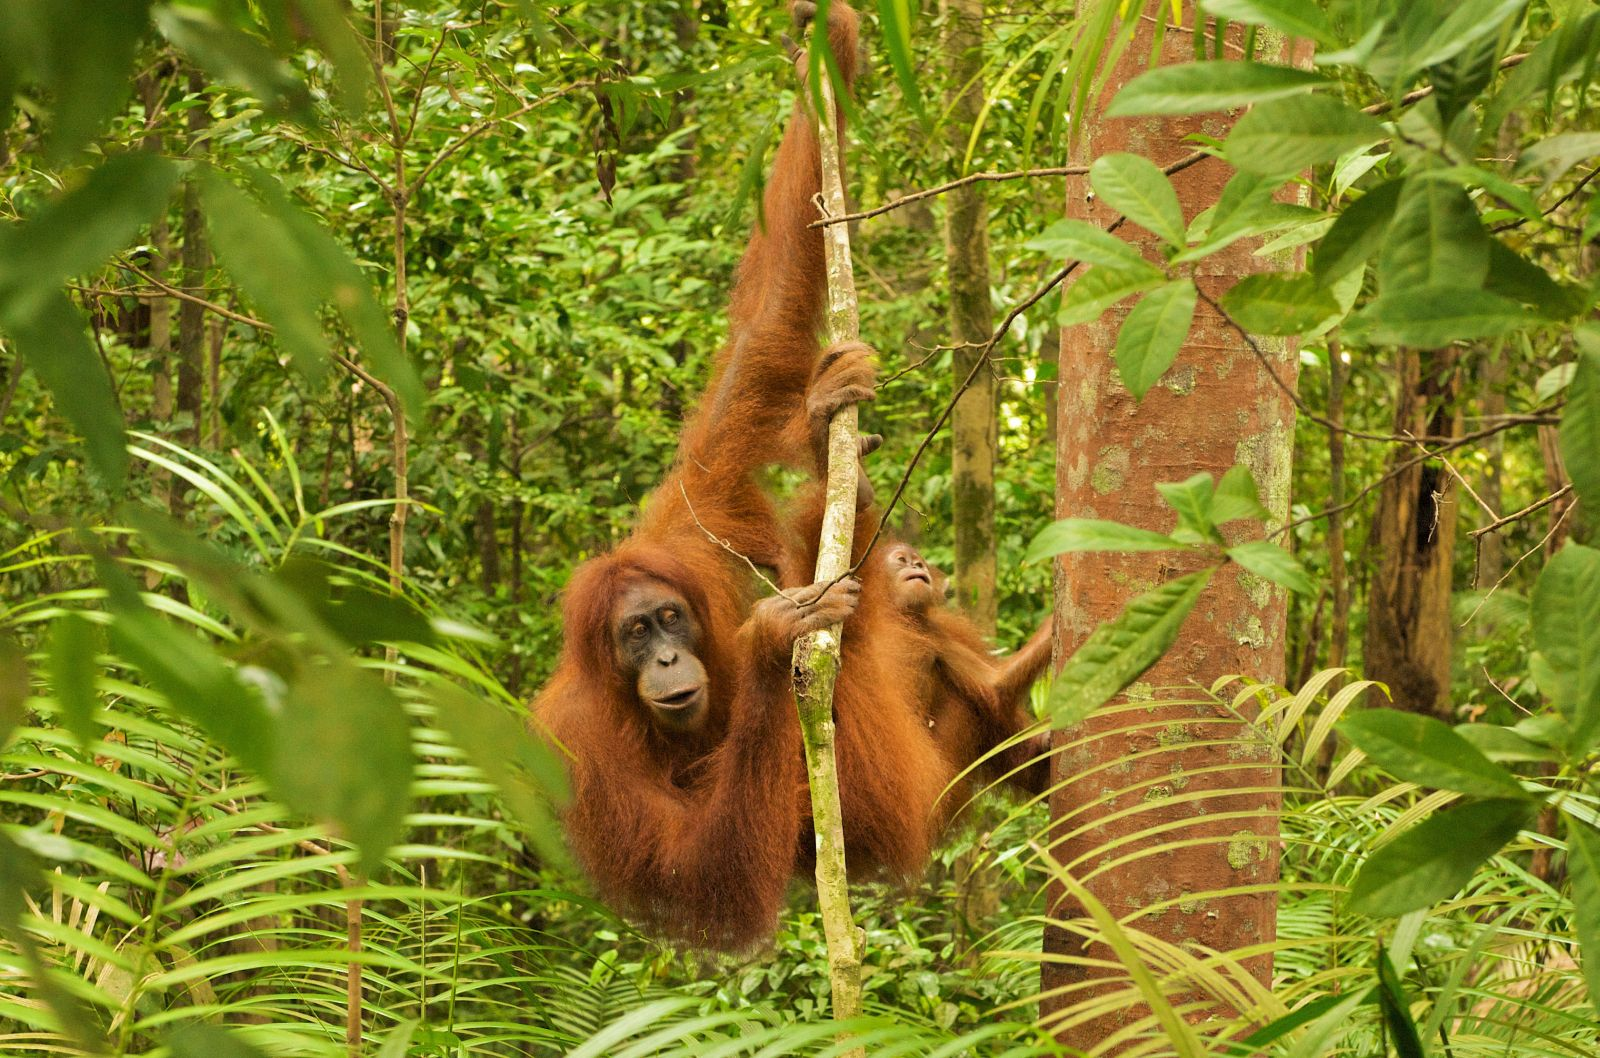 Sumatra 29.01.2011 - Orang Utan Weibchen mit Jungtier im Gunung Leuser Nationalpark in Nordsumatra (Indonesien). Female Orangutan with baby in the Gunung Leuser National Park, North Sumatra, Indonesia. © Oliver Salge/Greenpeace